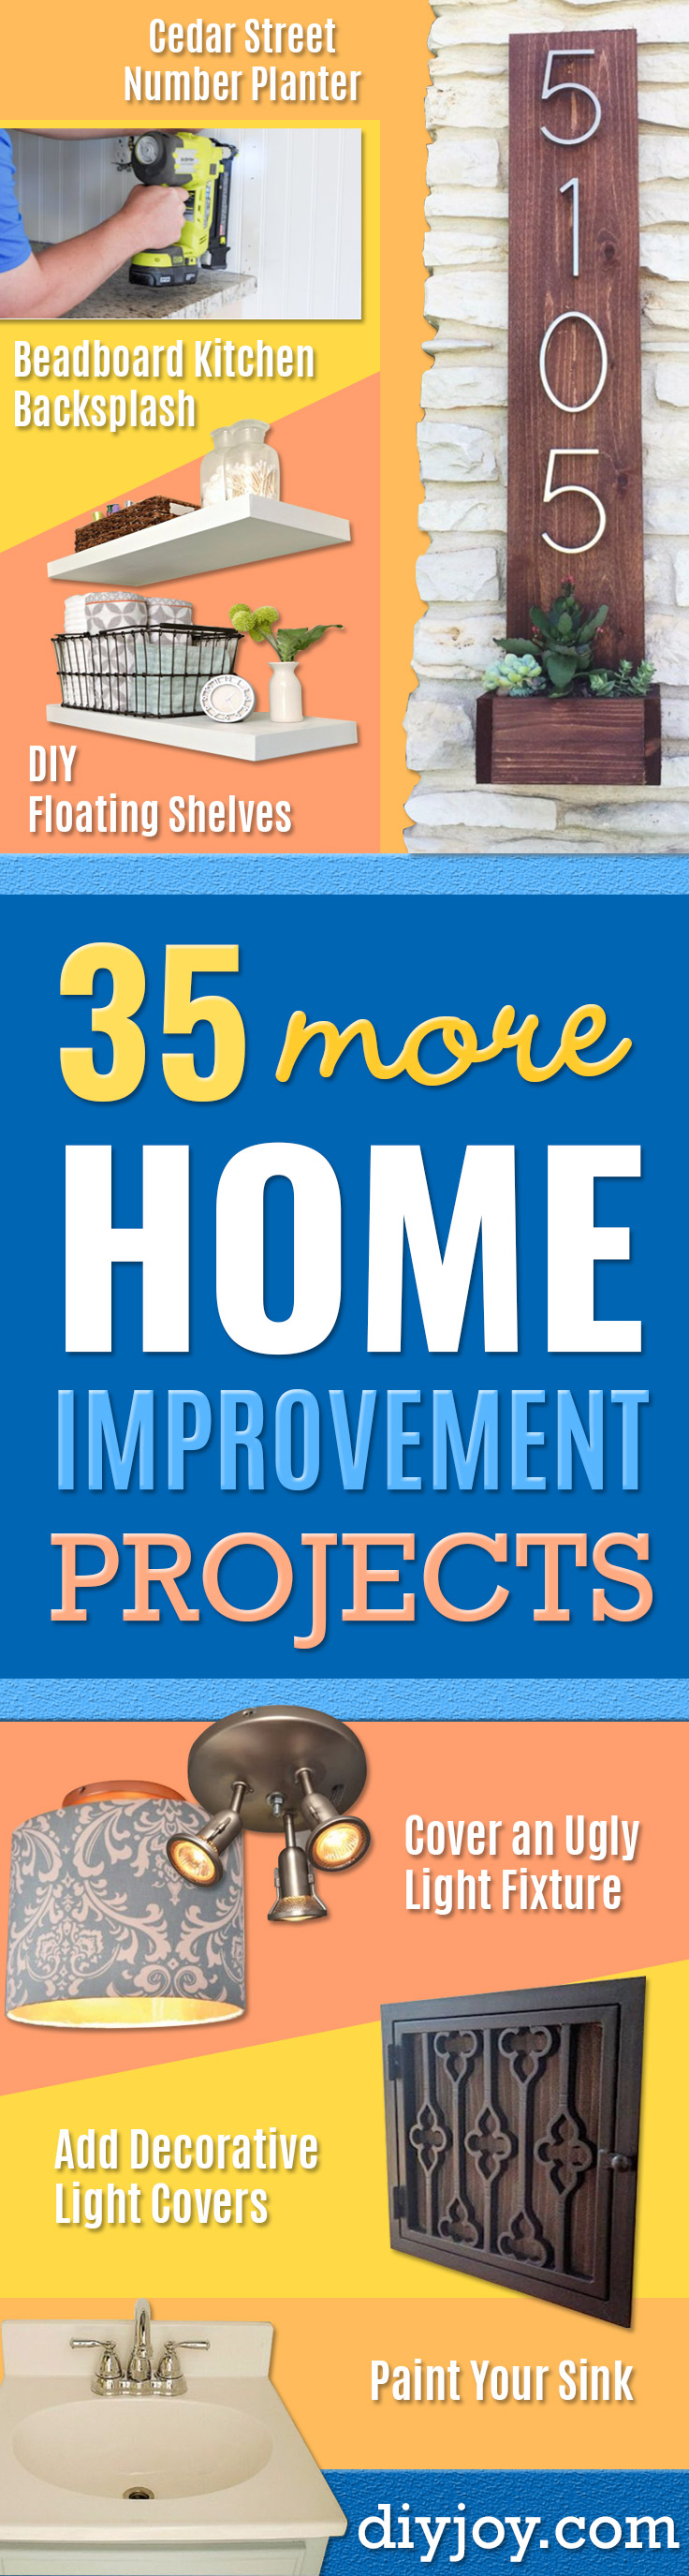 DIY Home Improvement Projects On A Budget - Cool Home Improvement Hacks, Easy and Cheap Do It Yourself Tutorials for Updating and Renovating Your House - Home Decor Tips and Tricks, Remodeling and Decorating Hacks - DIY Projects and Crafts by DIY JOY http://diyjoy.com/diy-home-improvement-ideas-budget